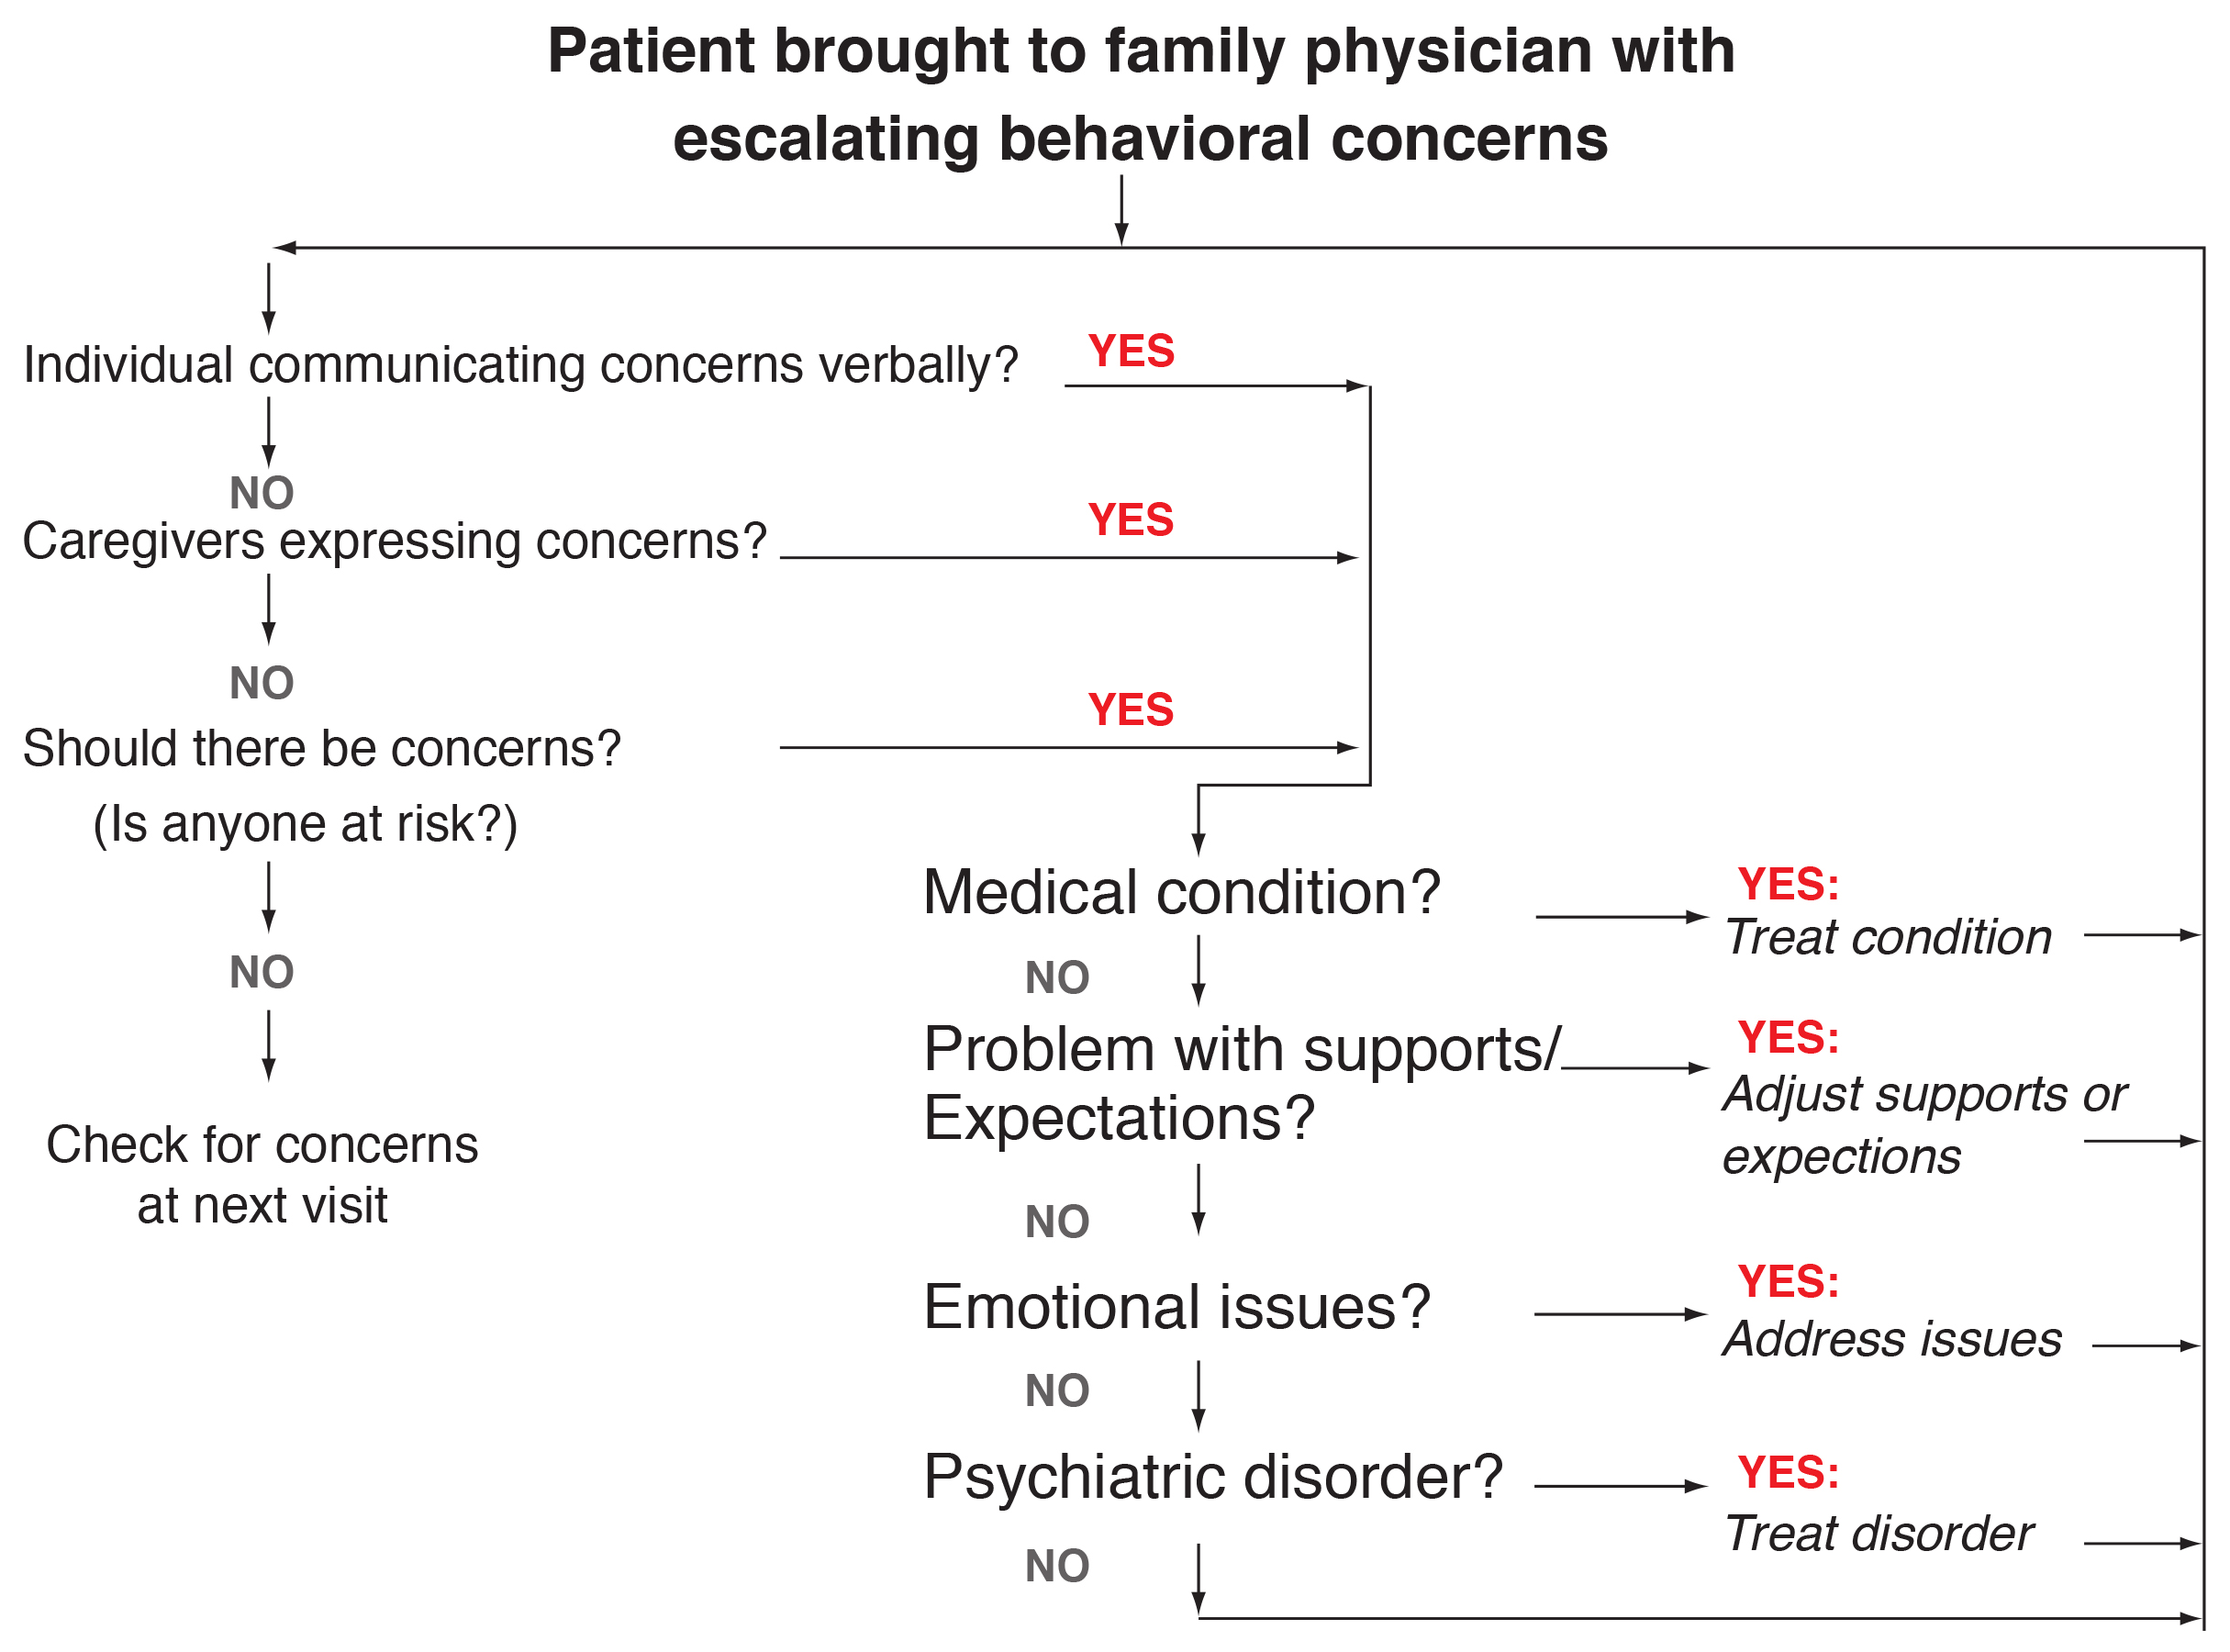 DiagnosticFormulationChart